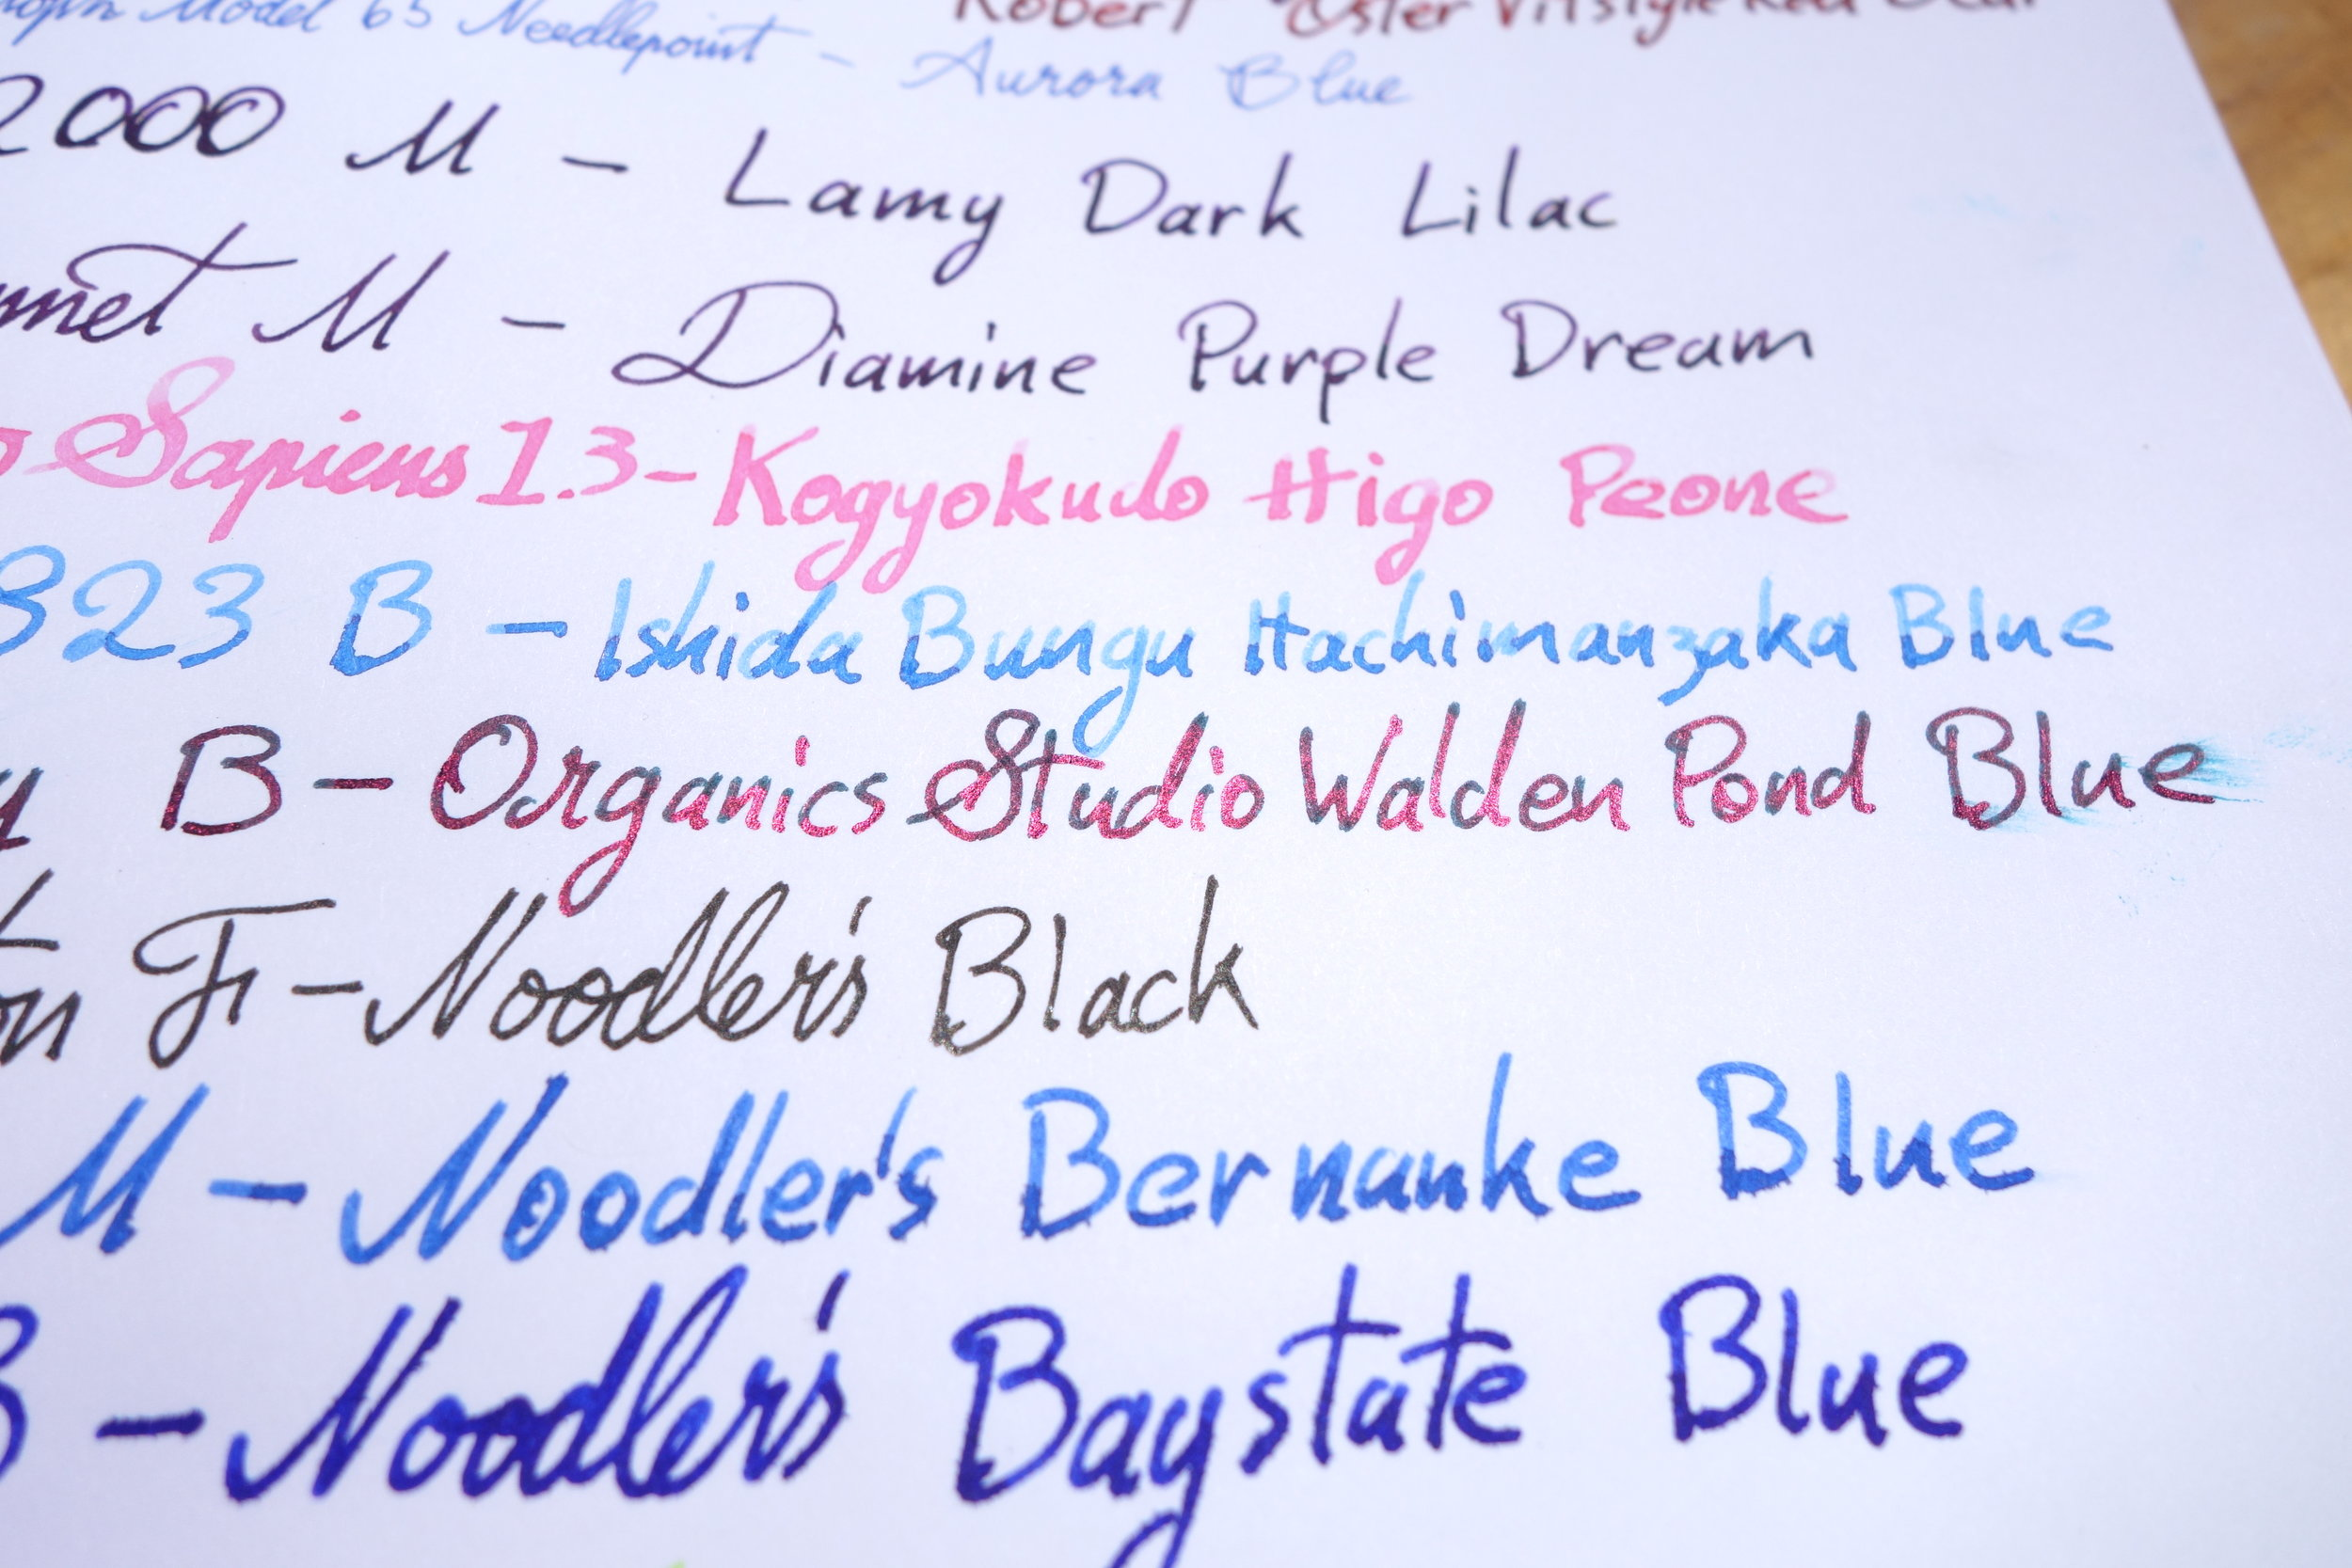 Sheen - OS Walden Pond Blue